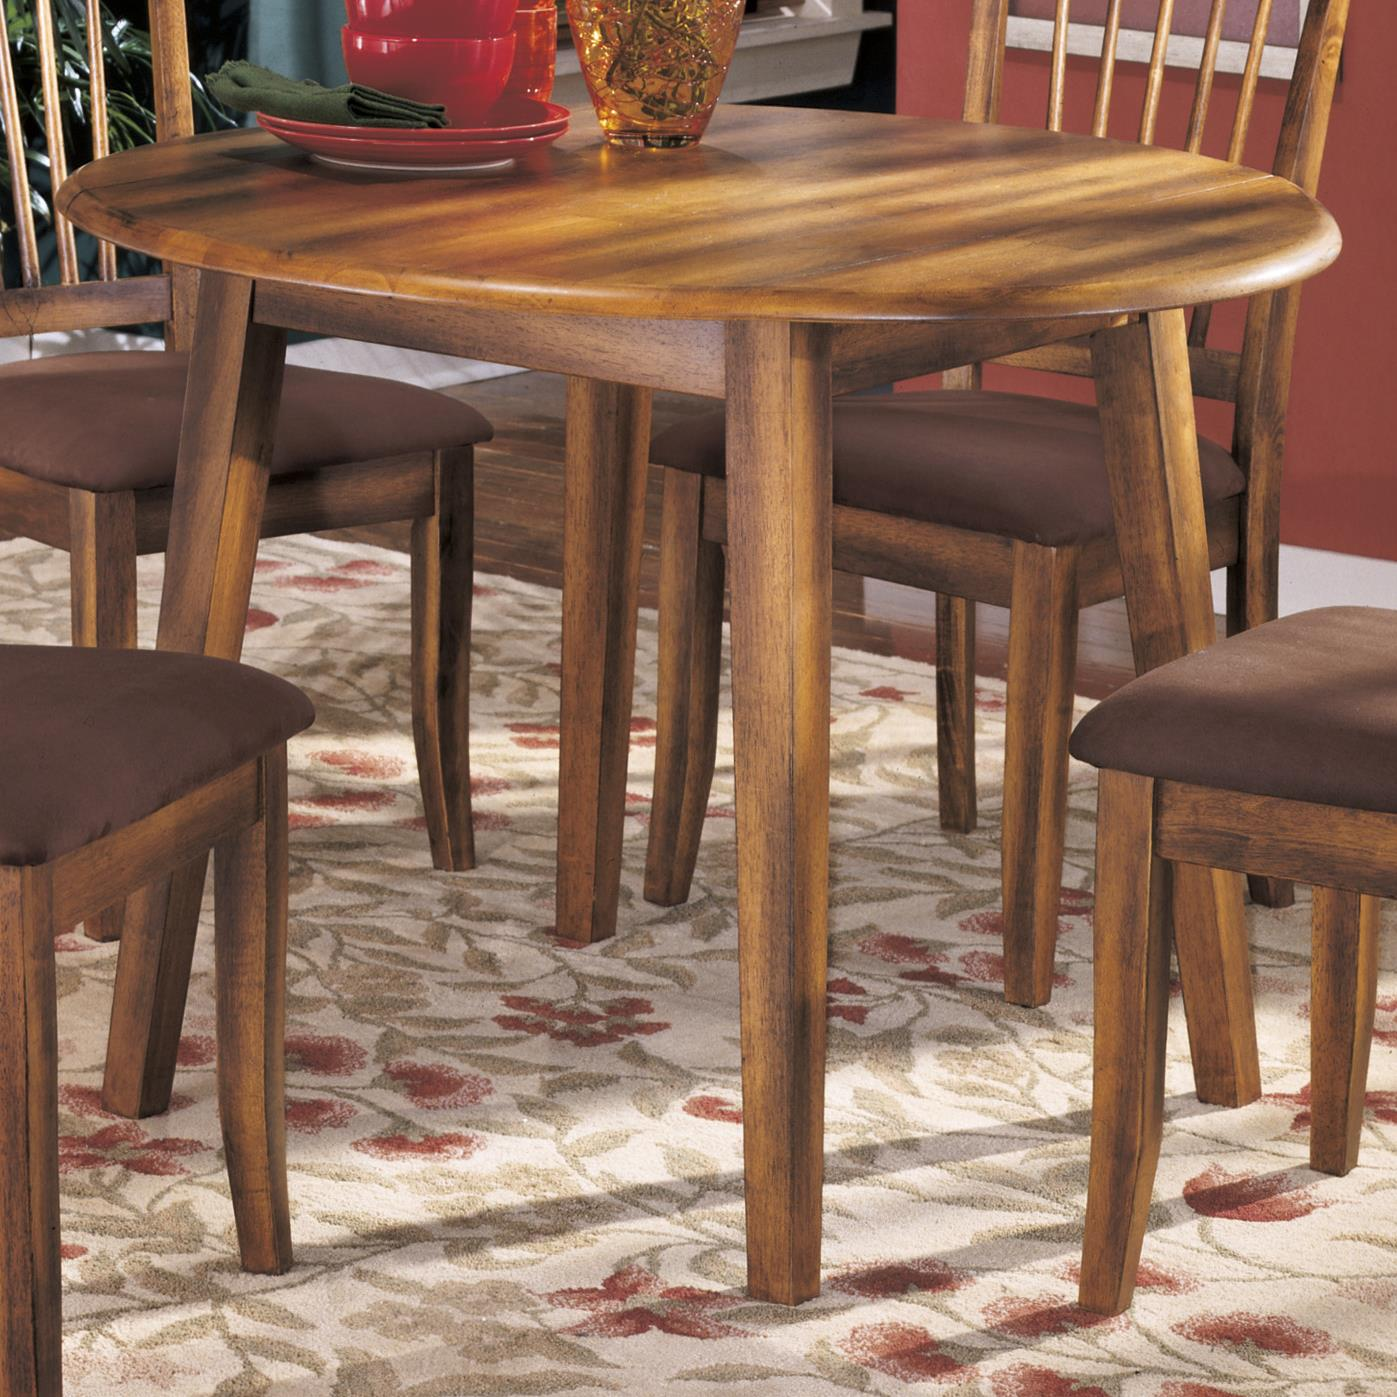 Ashley furniture berringer d199 15 hickory stained for Ashley furniture kitchen tables